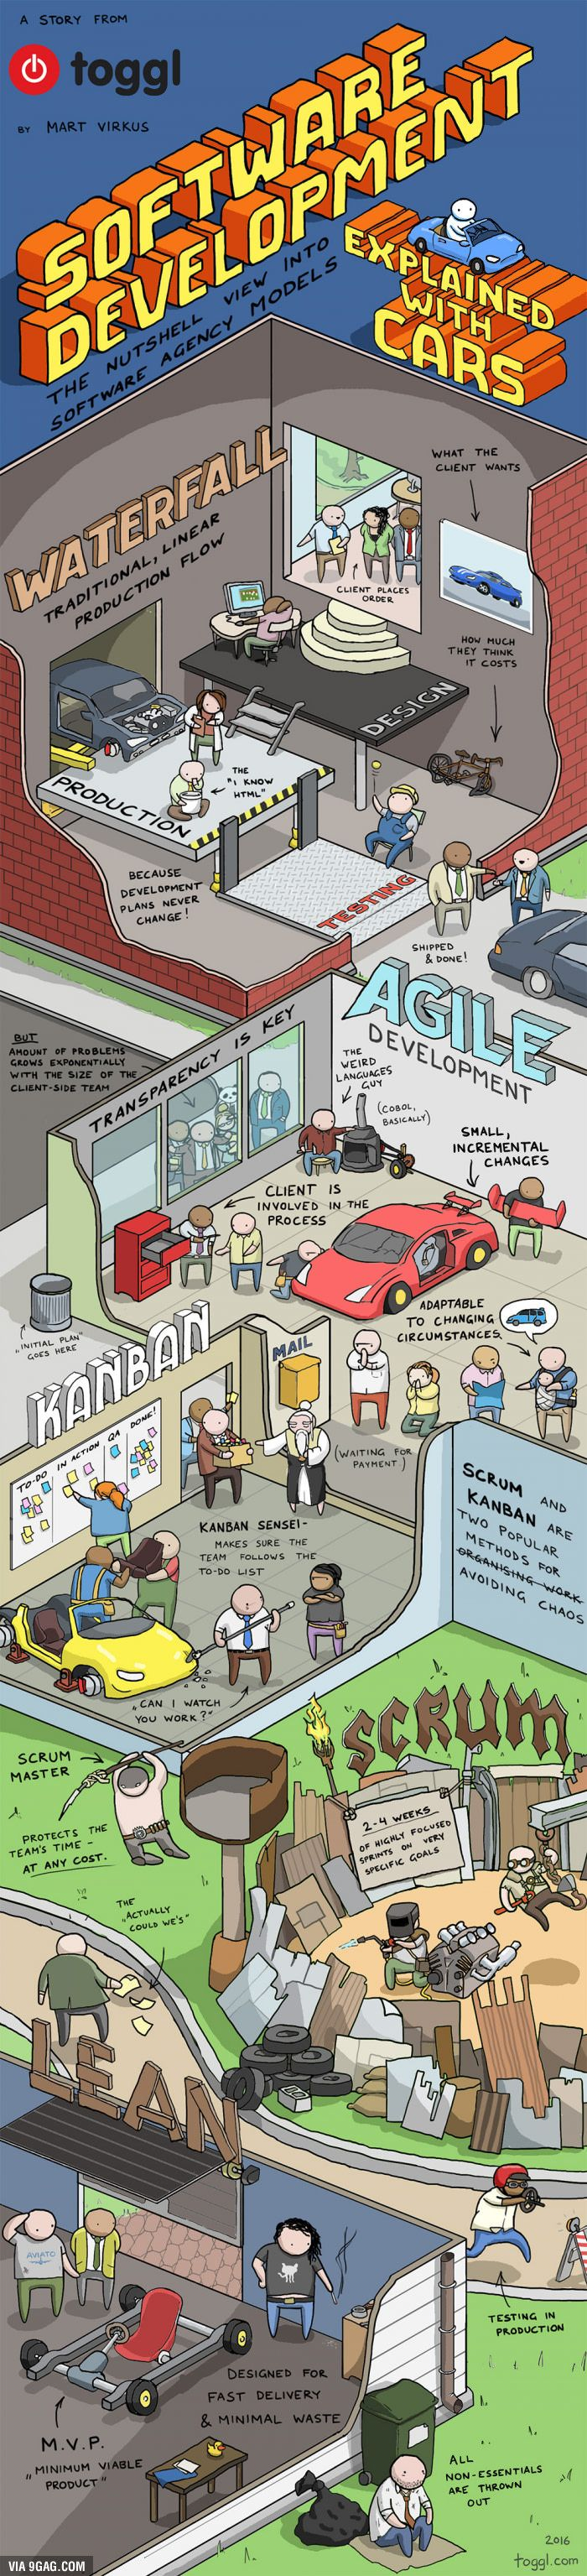 Software Development Explained With Cars | Mart Virkus